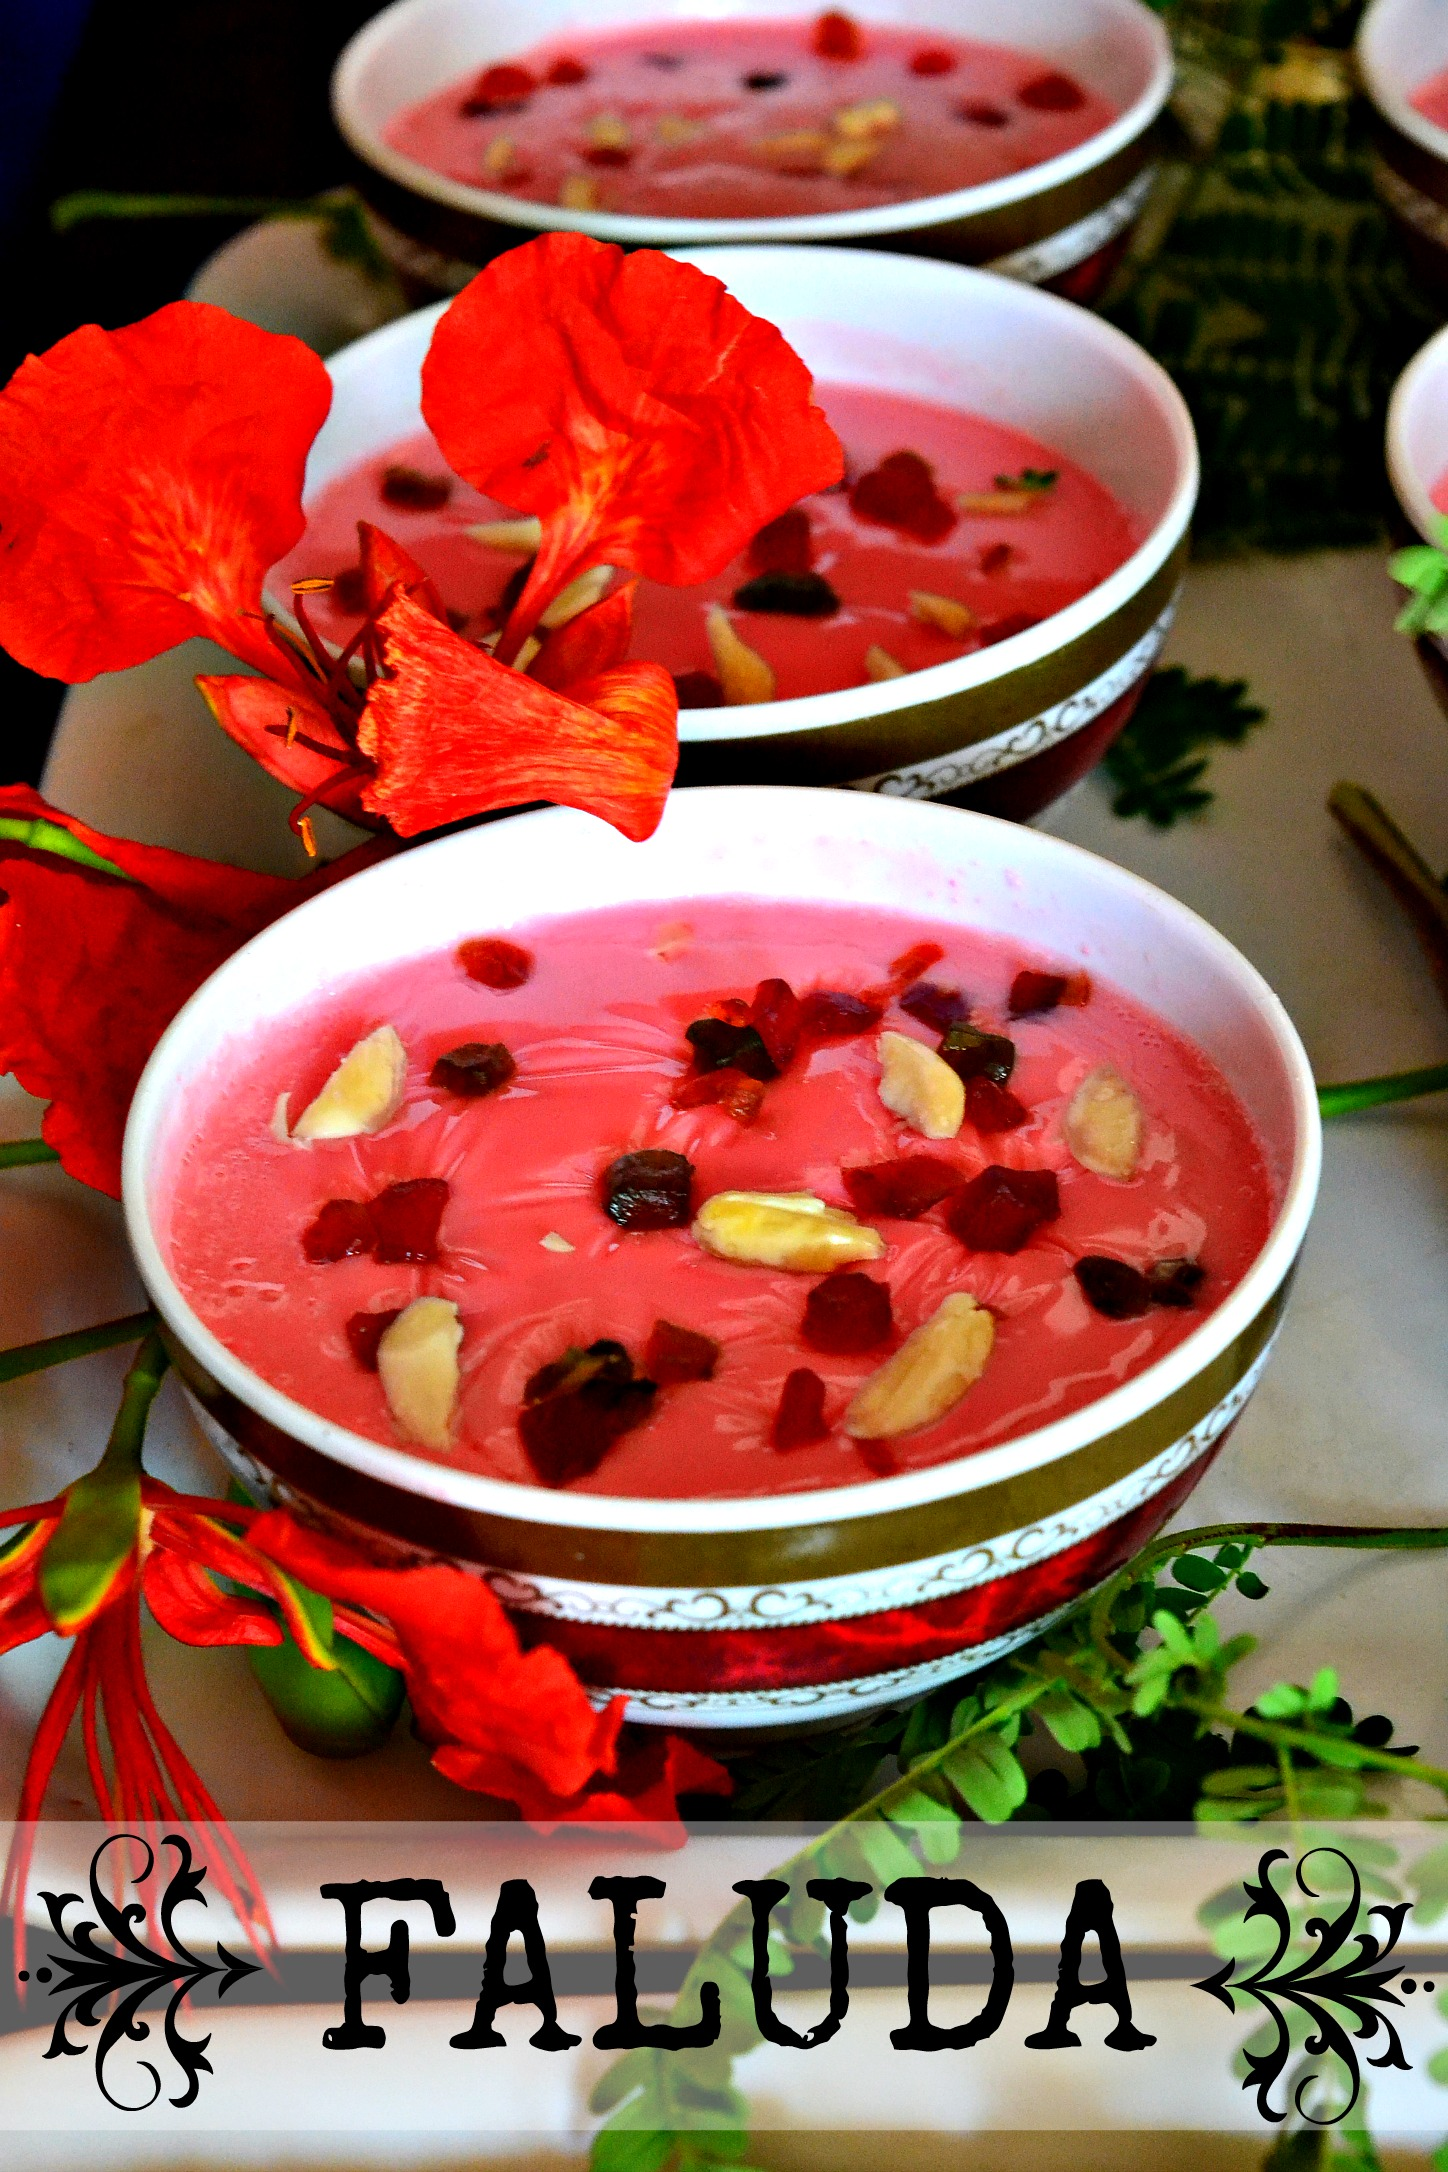 KENYAN FOOD_FALUDA_DESSERTS_HOW TO MAKE FALUDA_LAMU FOOD FESTIVAL_KALUHISKITCHEN.COM